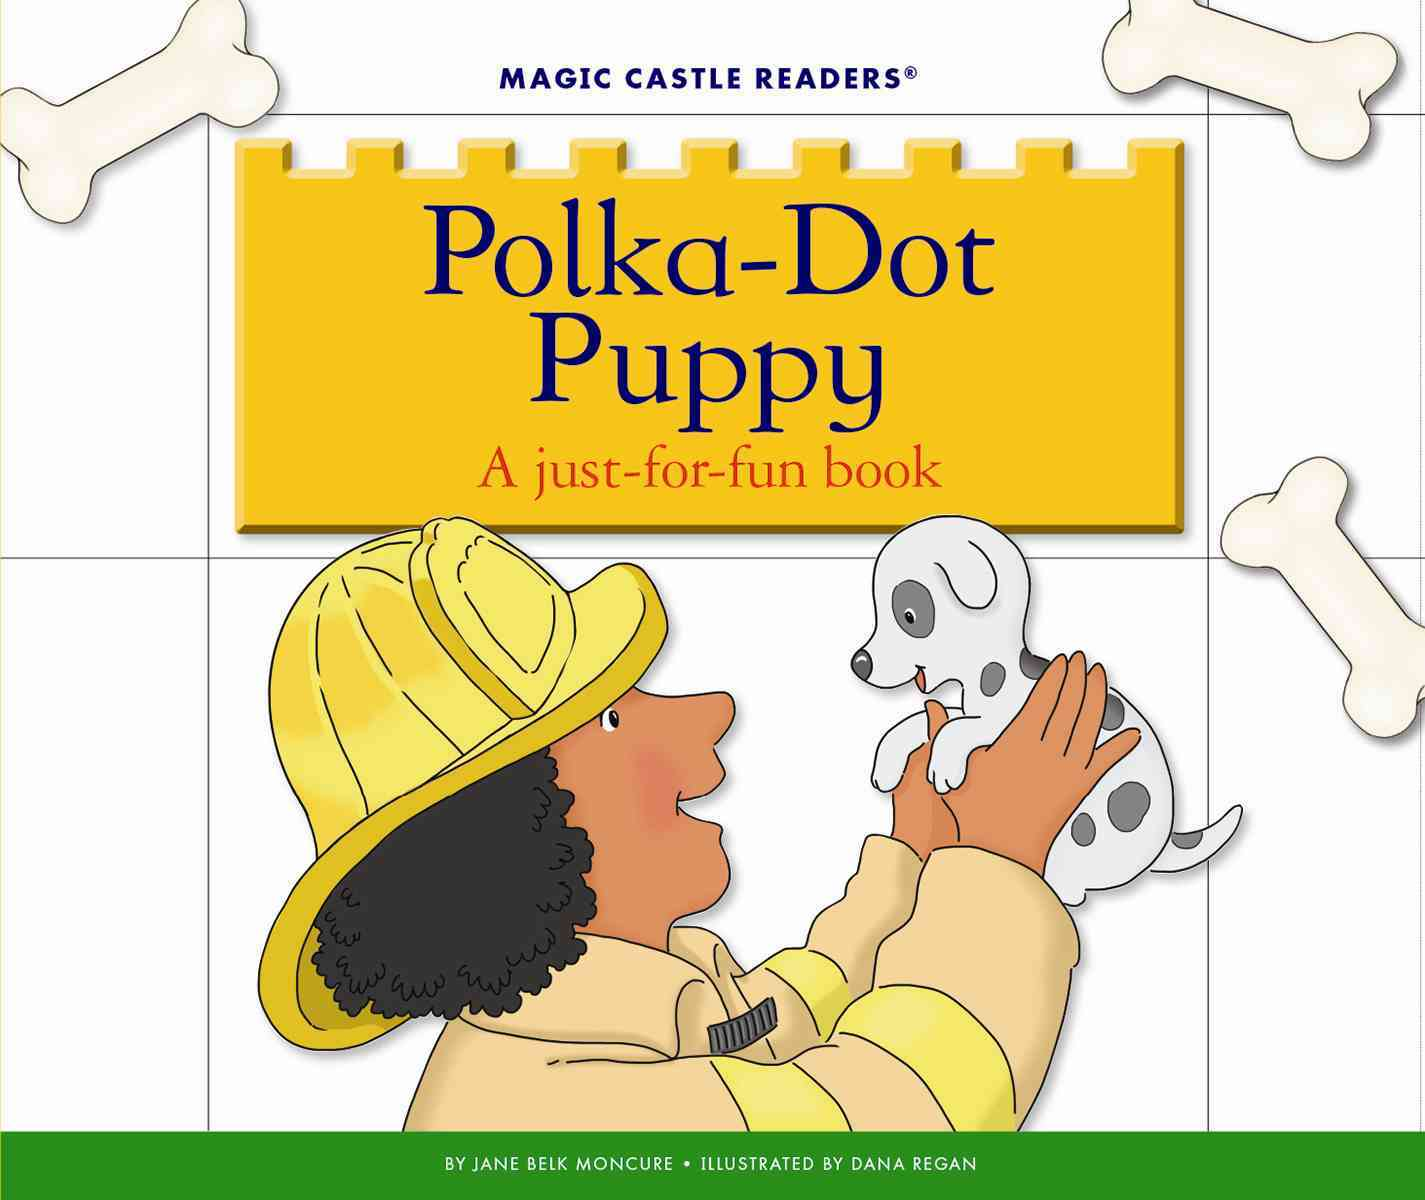 Child's World Polka-Dot Puppy: A Just-For-Fun Book by Moncure, Jane Belk/ Regan, Dana [Library Binding] at Sears.com